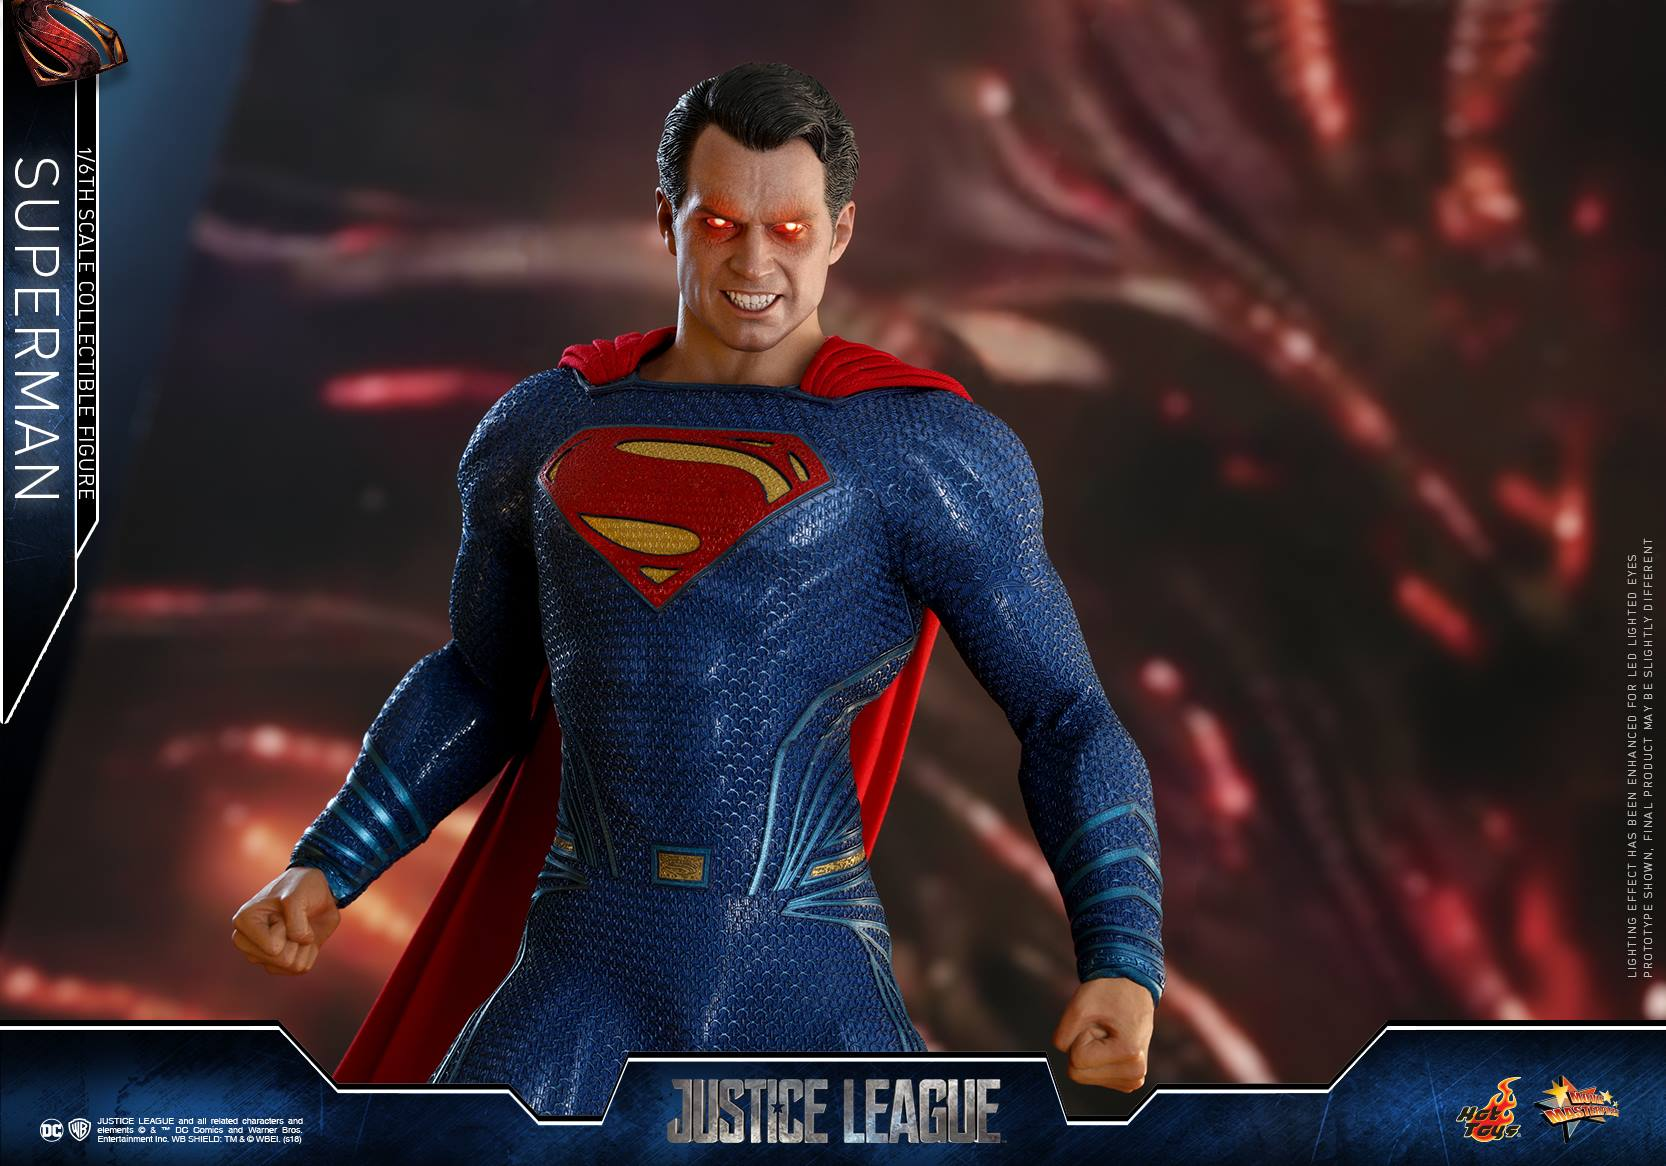 Not Toys For 2018 From Moive : Hot toys justice league superman figure up for pre order